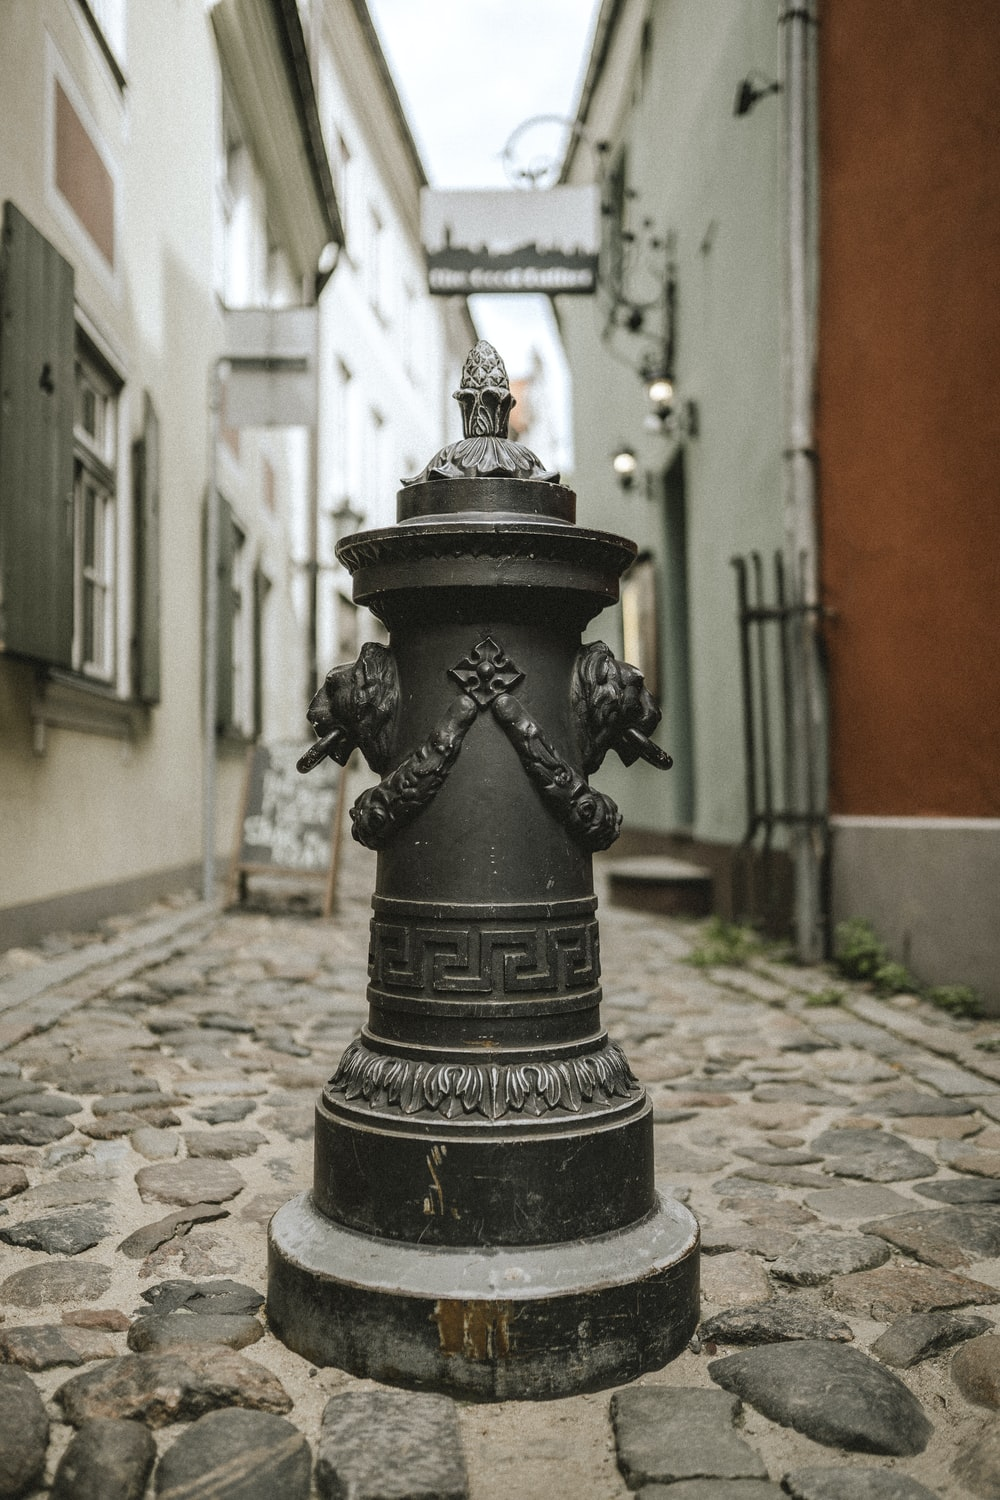 black concrete outdoor fountain in the middle of the street